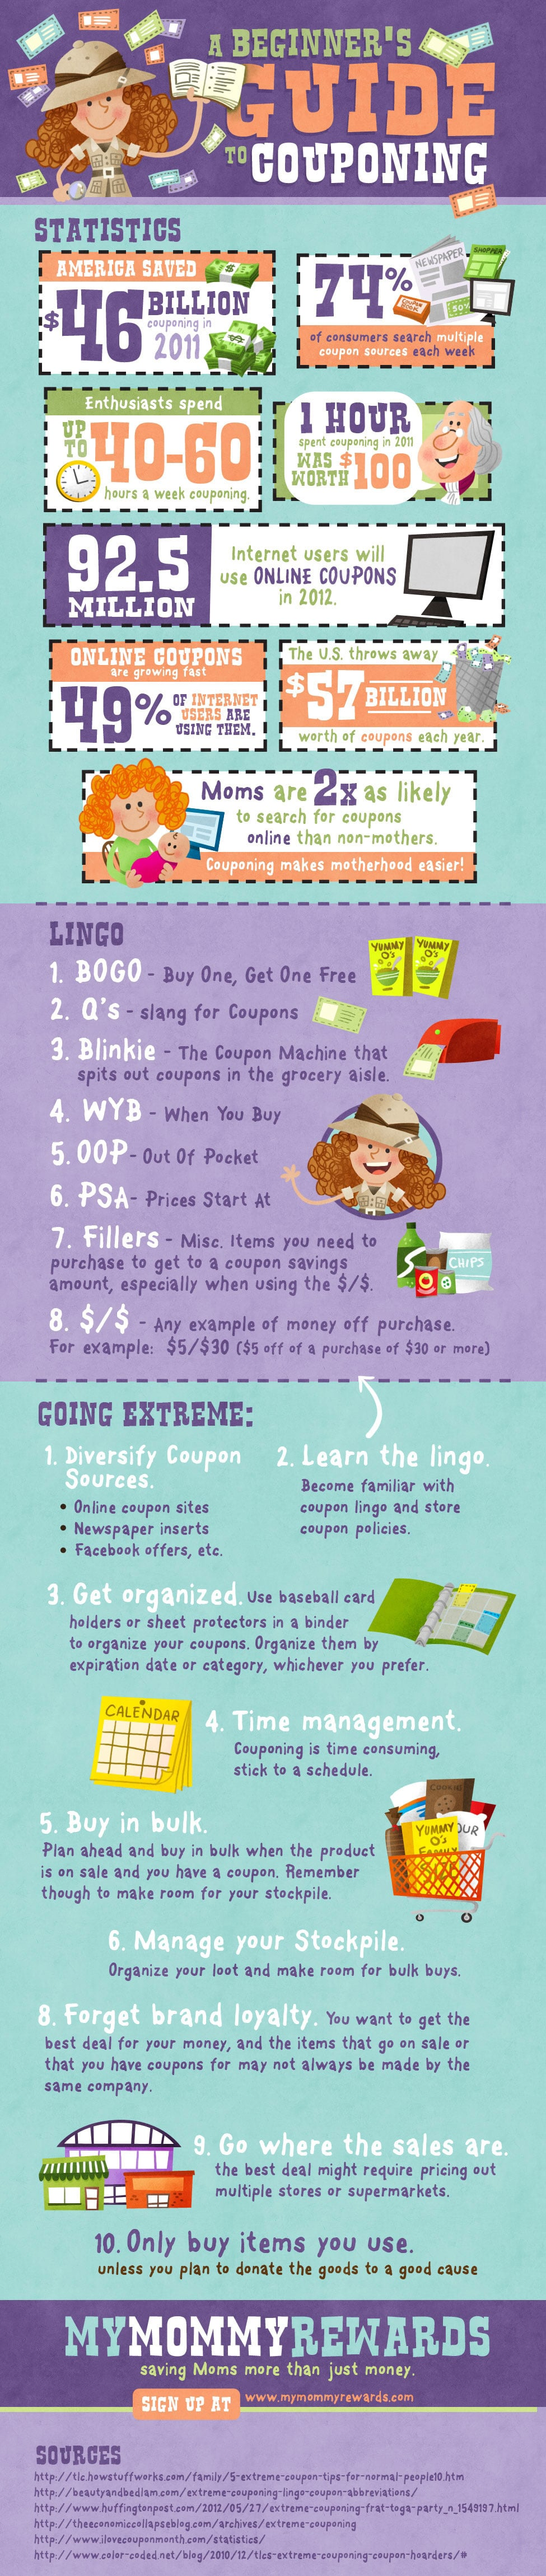 Couponing Guide For Beginners [Infographic]